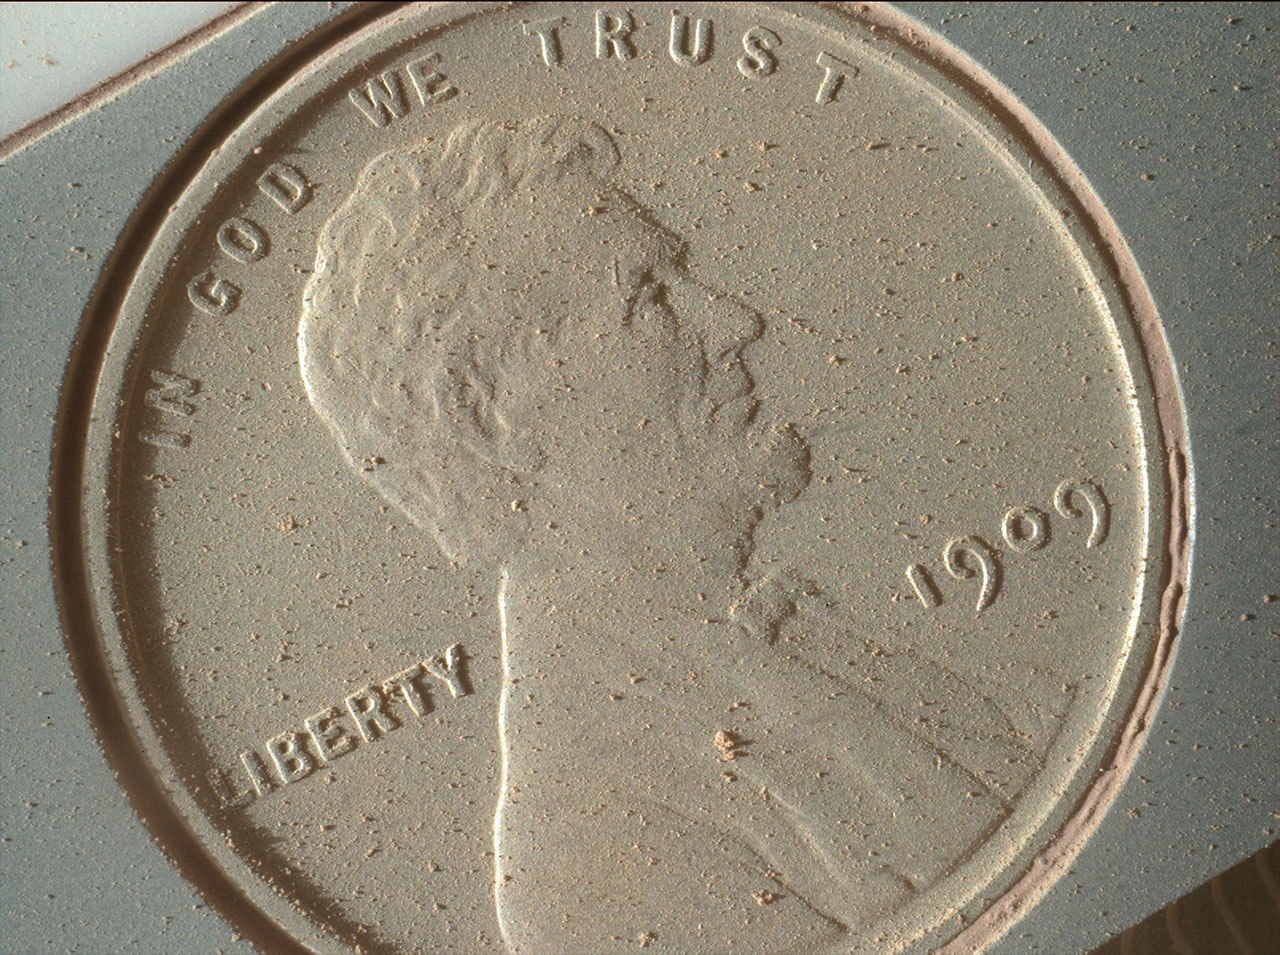 Red Cent: Mars Rover Curiosity Snaps High-Res Pic of Penny Payload